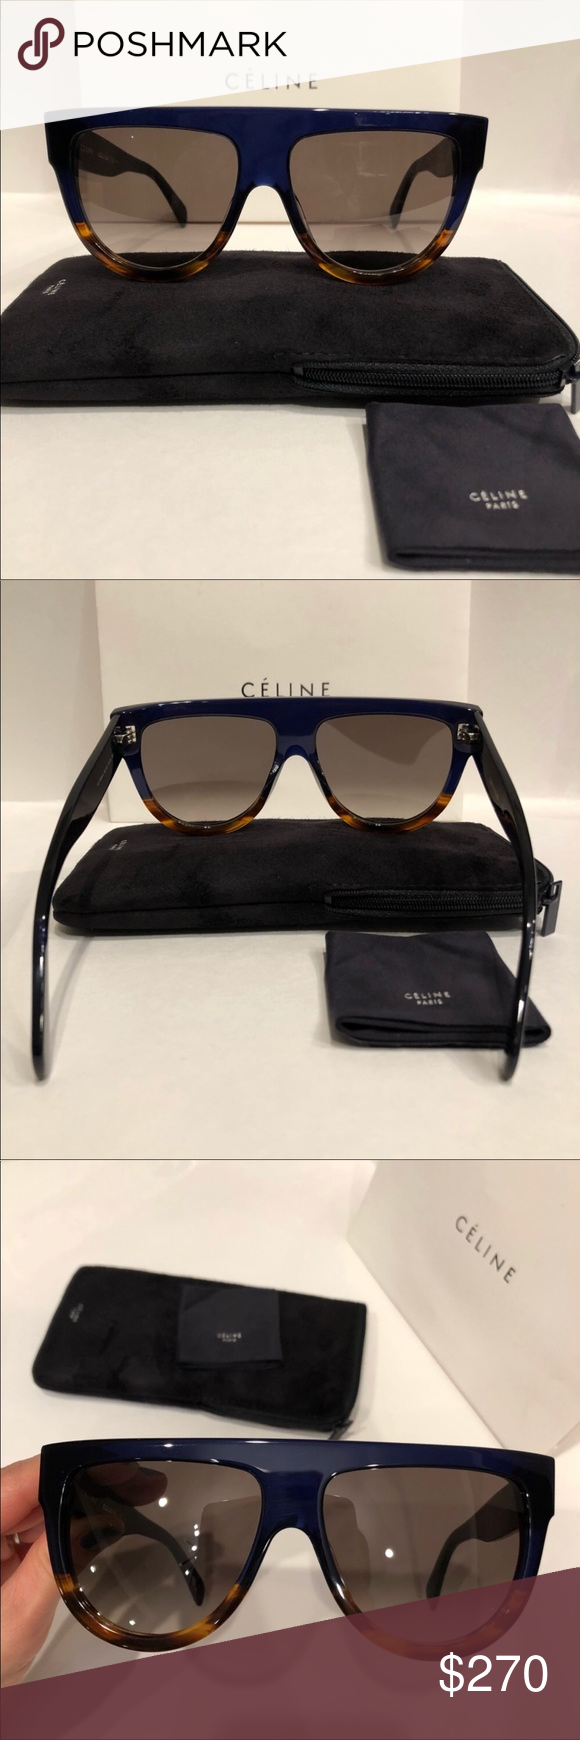 fab22bef7b62 Celine sunglasses 😎 Celine 41026 s shadow Dark blue tortoise sunglasses  Very nice shades.